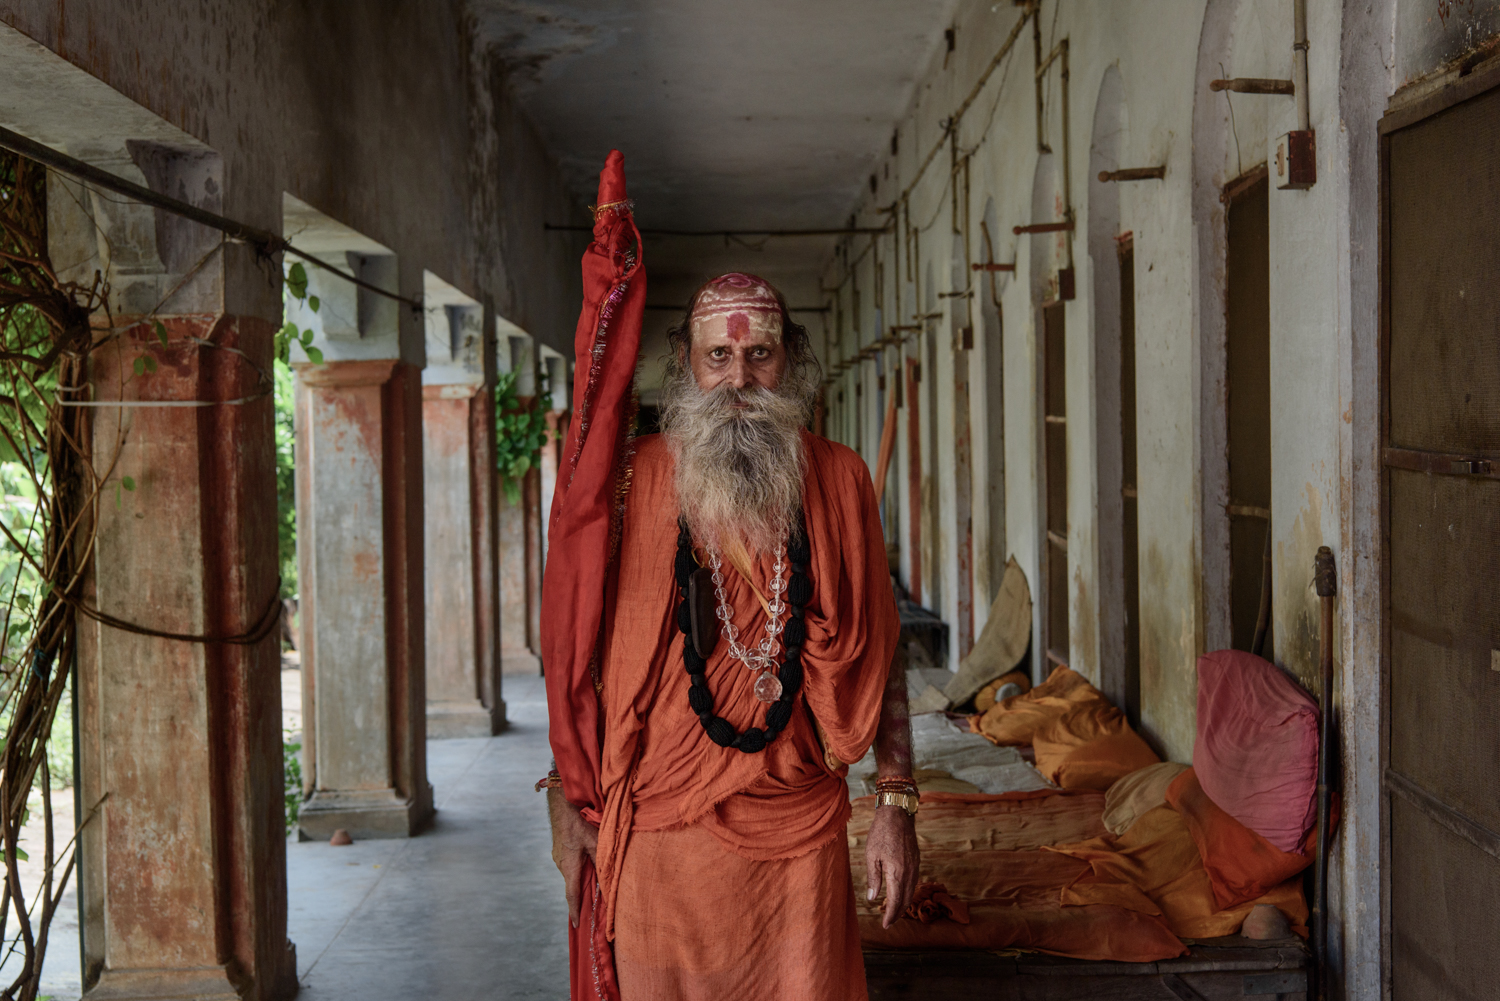 A sadhu at the men's accomodation section of Mumukshu Bhawan in Varanasi.